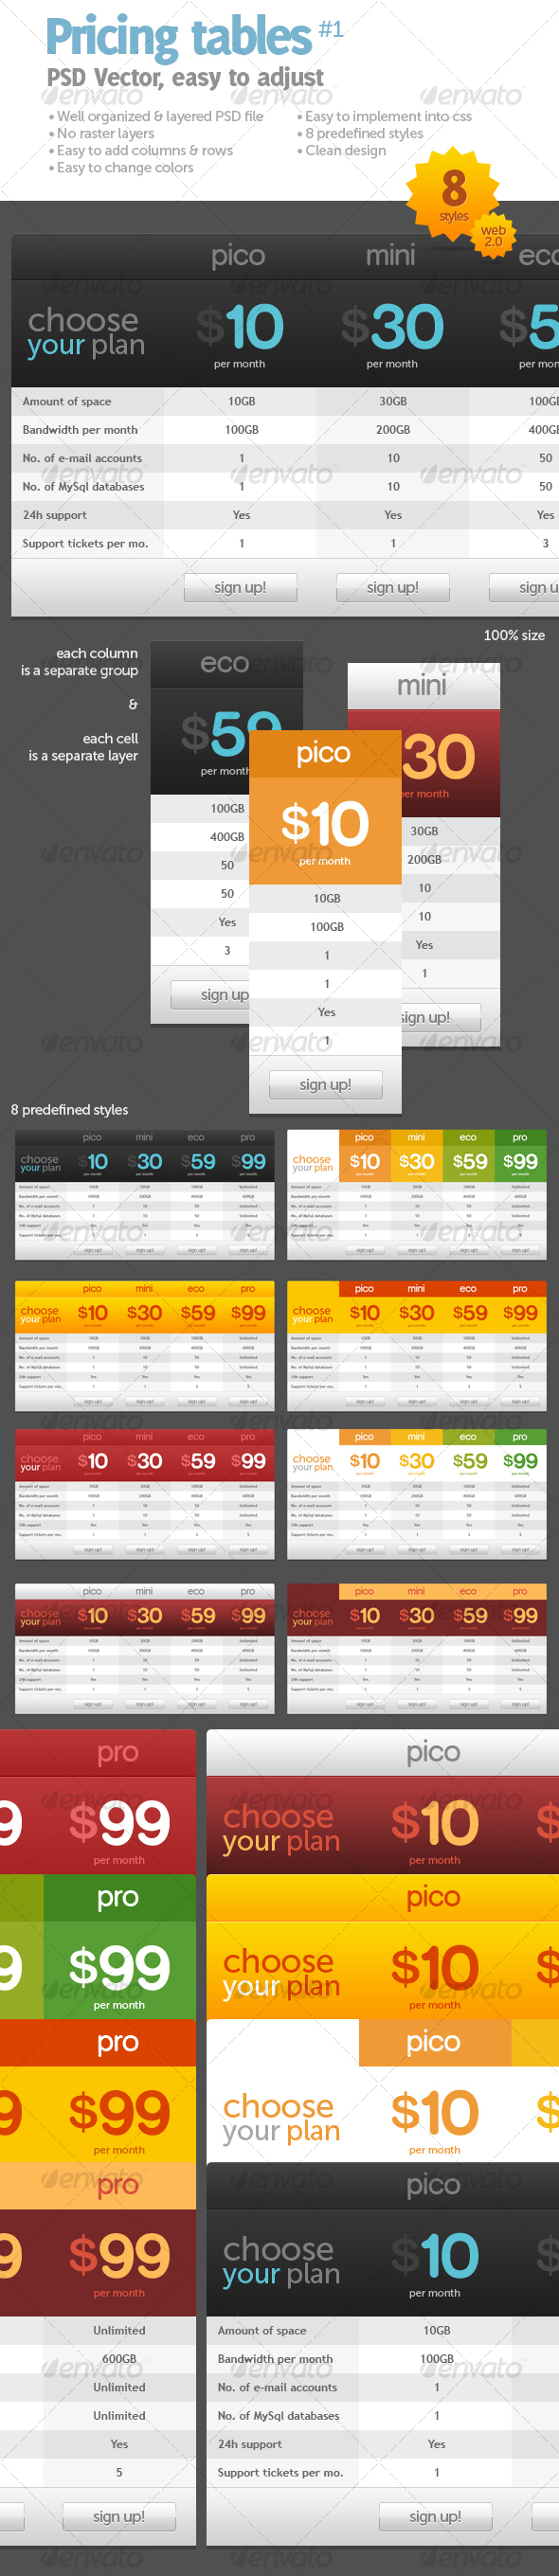 GraphicRiver Pricing tables #1 84427